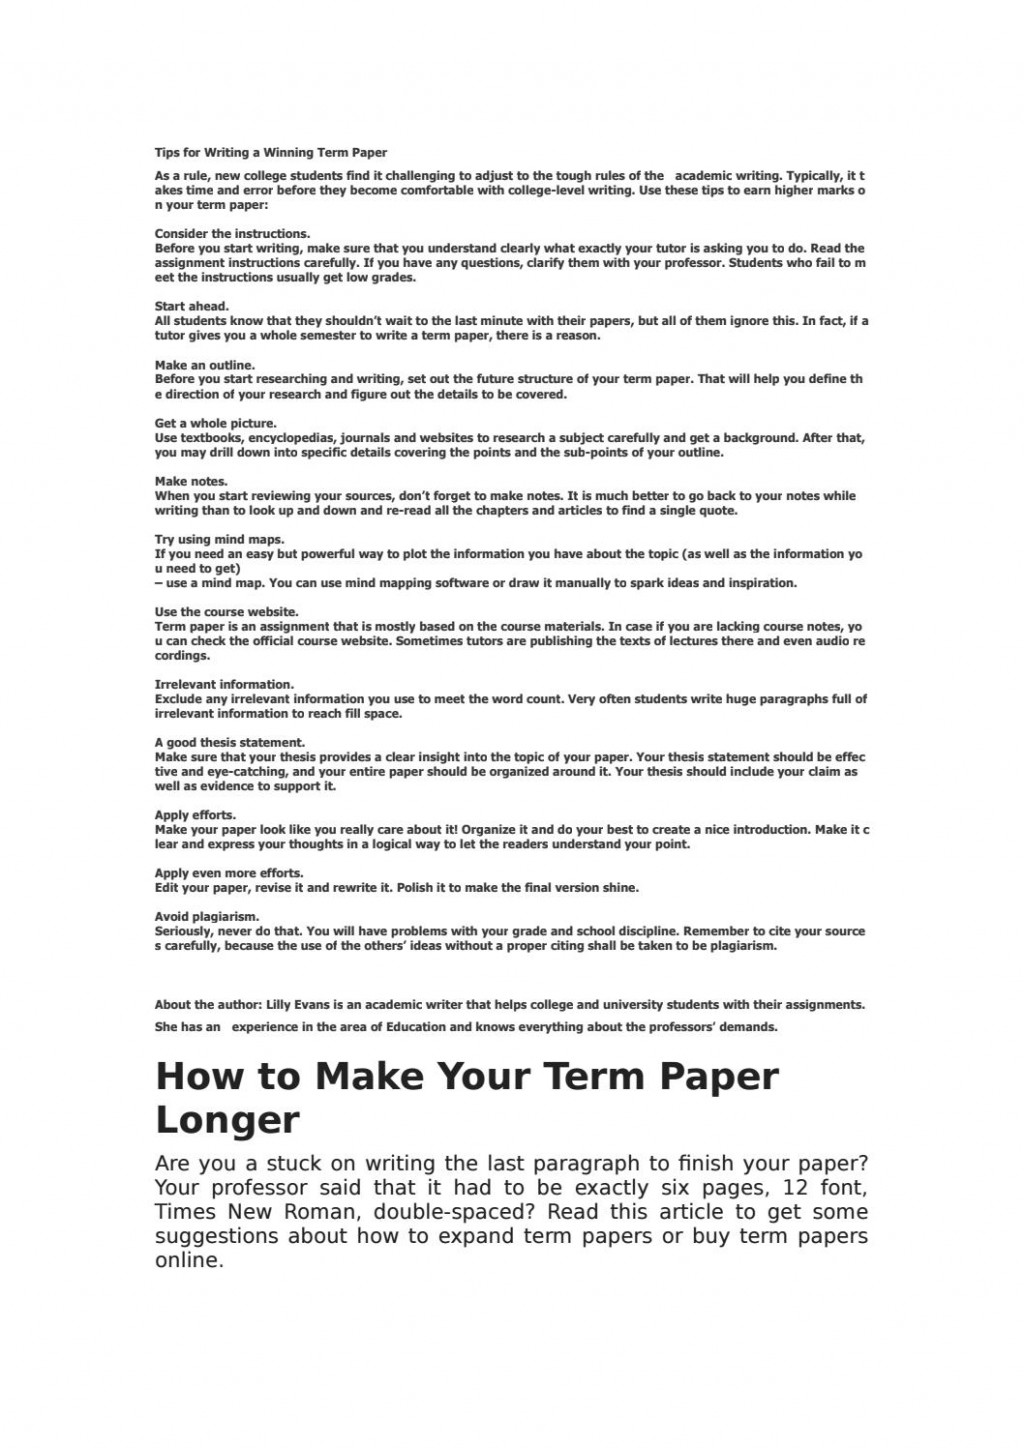 013 How To Make An Outline For Term Paper Research Page 1 Amazing A Create Large